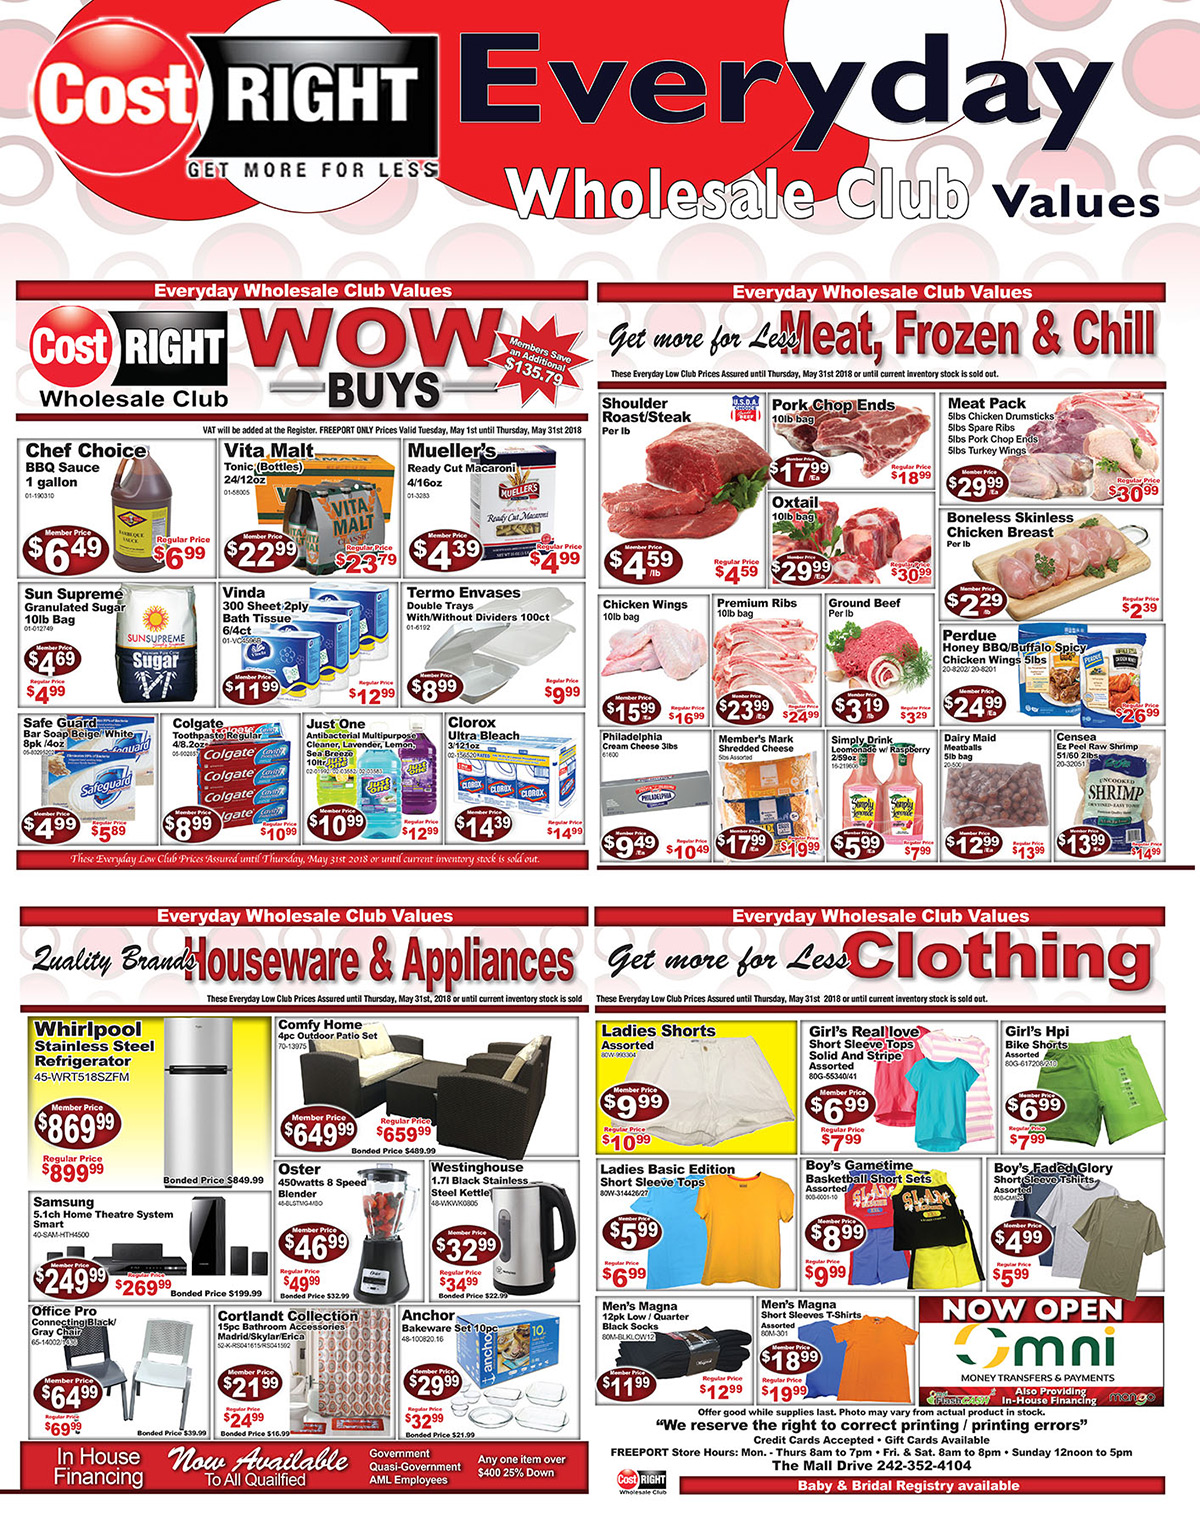 Bed And Bath Products Wholesale